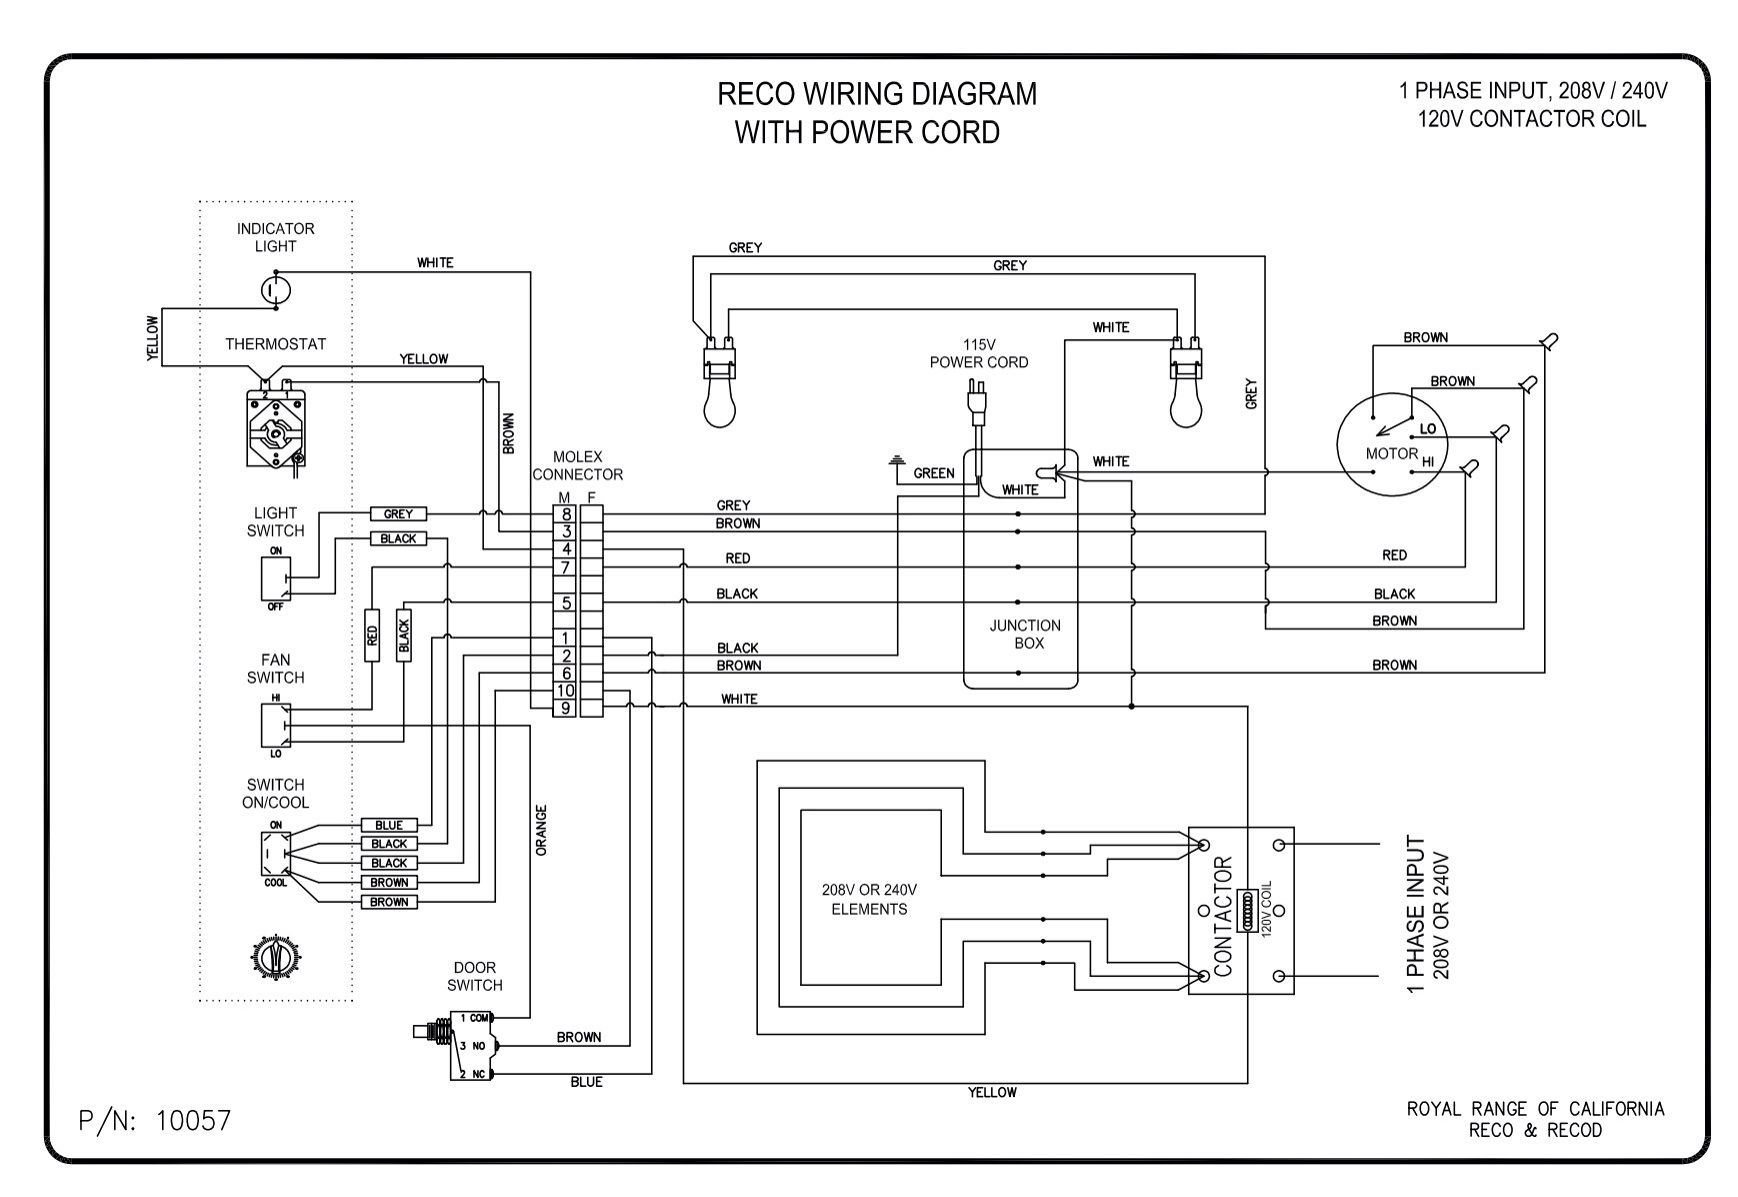 [SCHEMATICS_48ZD]  Wiring Diagrams - Royal Range of California, wiring diagrams royal range of  california with products proudlysigned and manufactured in the u.s. royal  range of c… di 2020 | Royal Wiring Diagrams |  | Pinterest